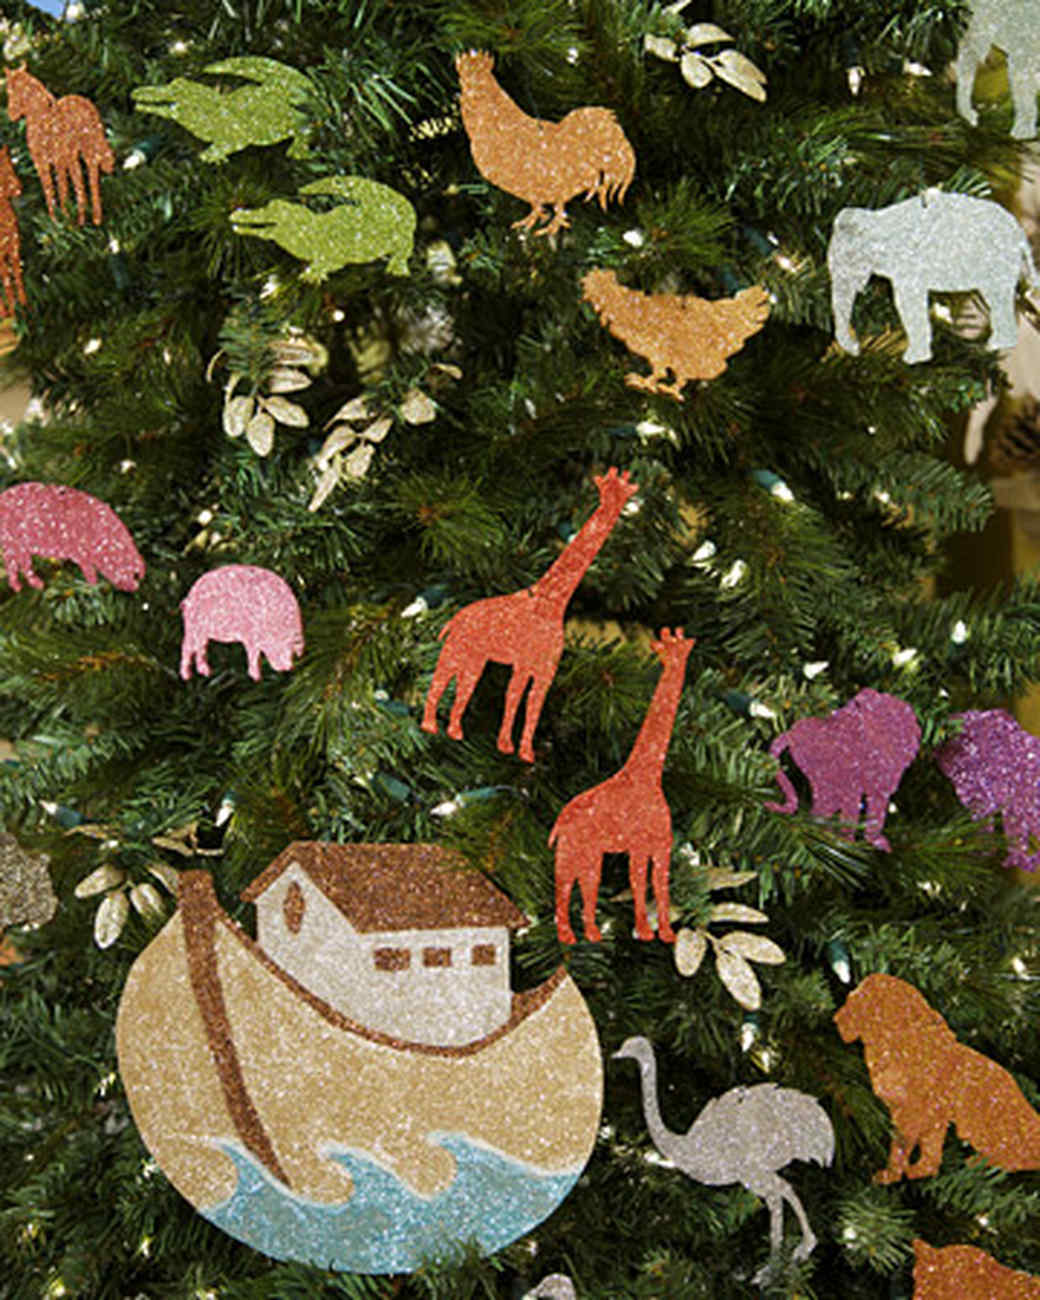 Noah's Ark Ornaments